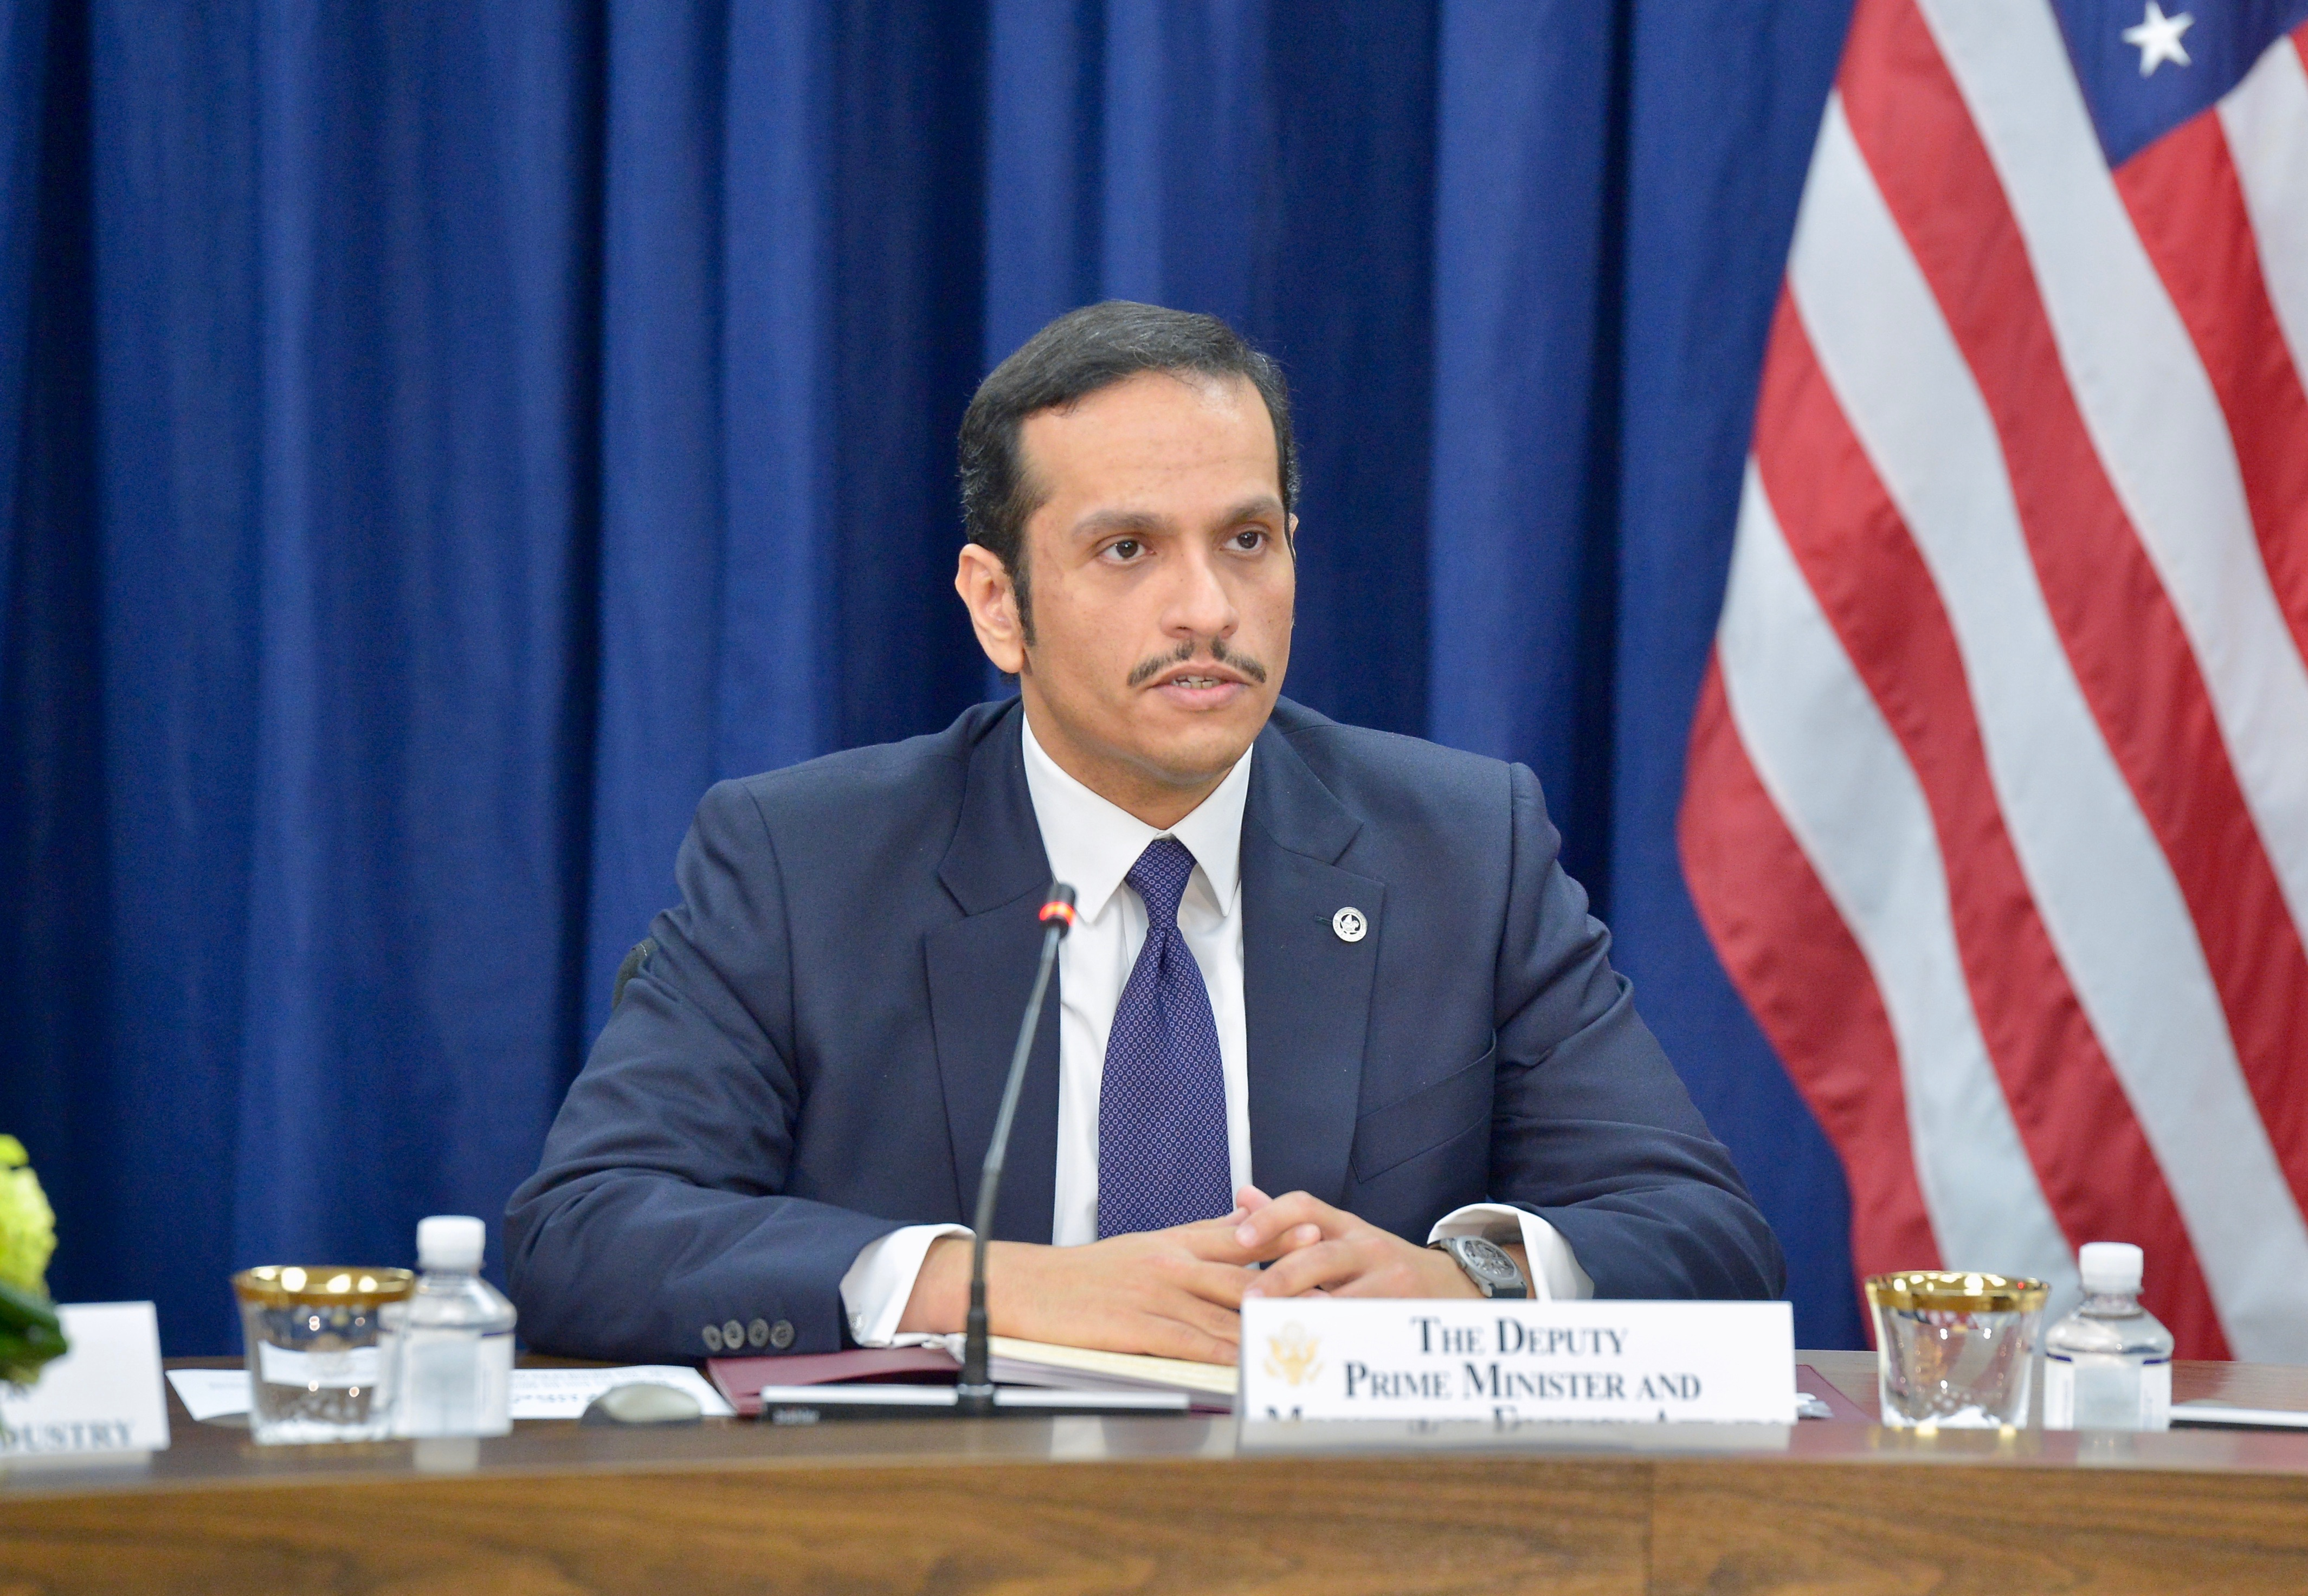 File:Qatari Foreign Minister Sheikh Mohammed bin Abdulrahman Al Thani Delivers Remarks at the High-Level Opening Session of the Inaugural U.S.-Qatar Strategic Dialogue.jpg - Wikimedia Commons